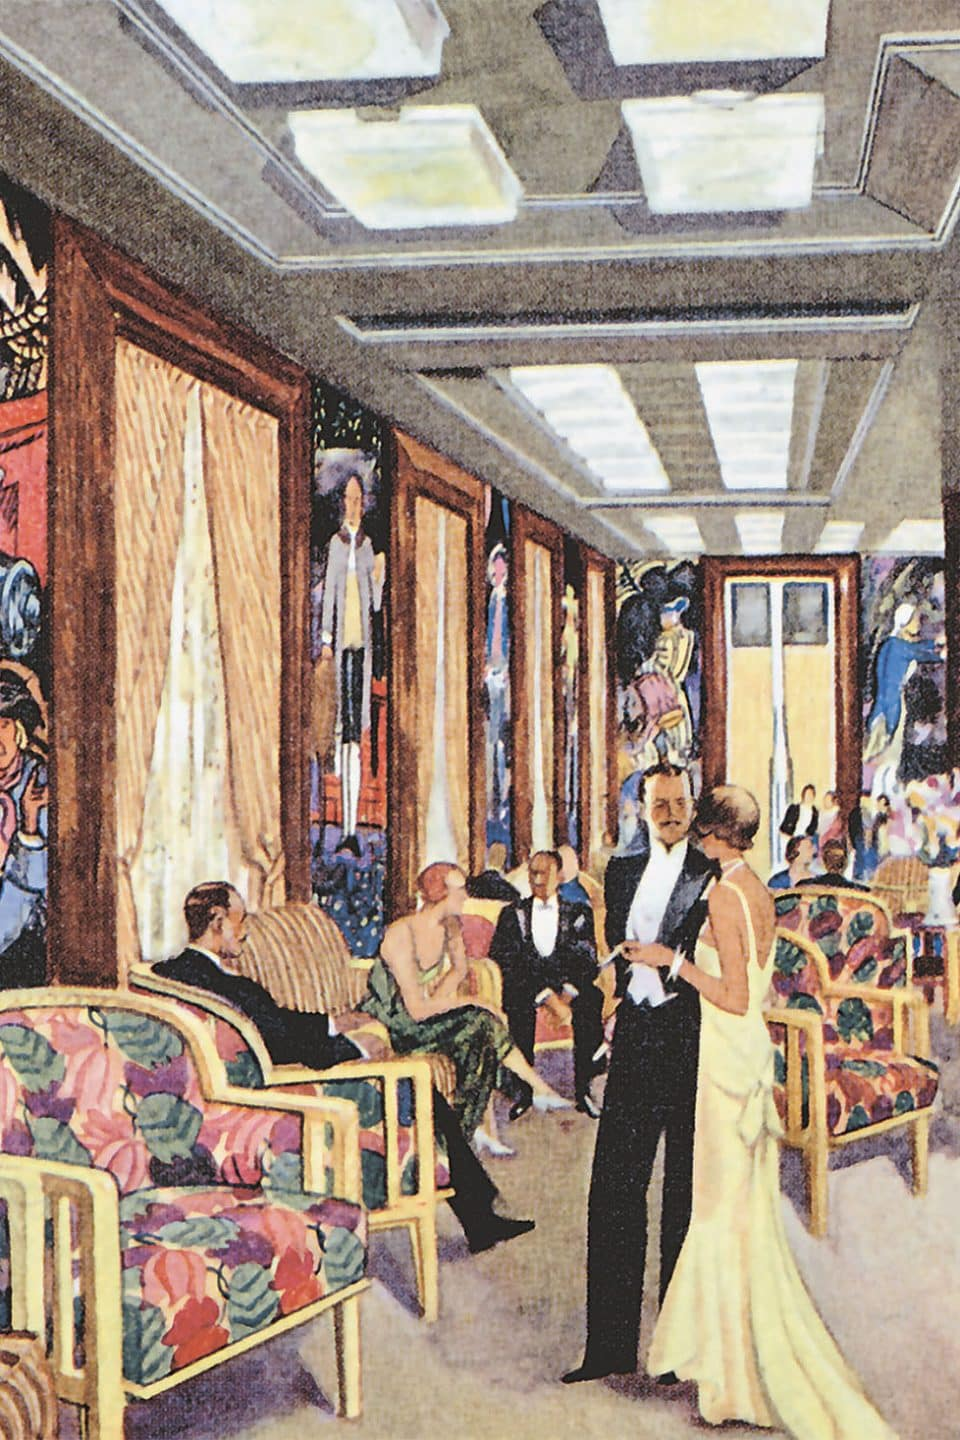 From Art Deco to the Orient Express: the Legacy of René Prou